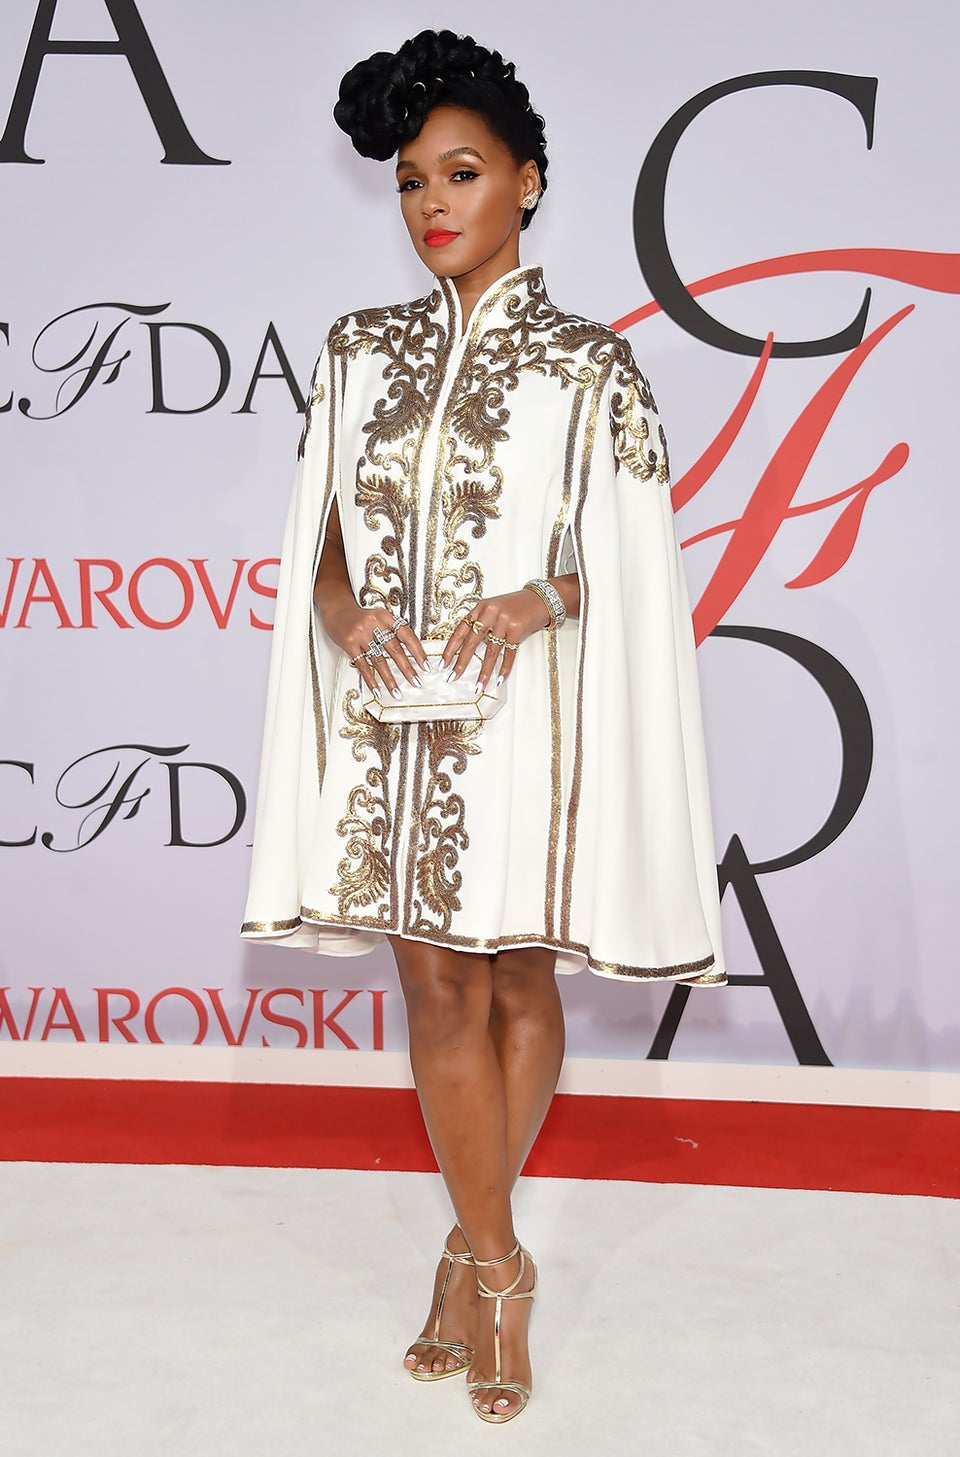 Janelle Monae Set to Star in First Major Movie Role